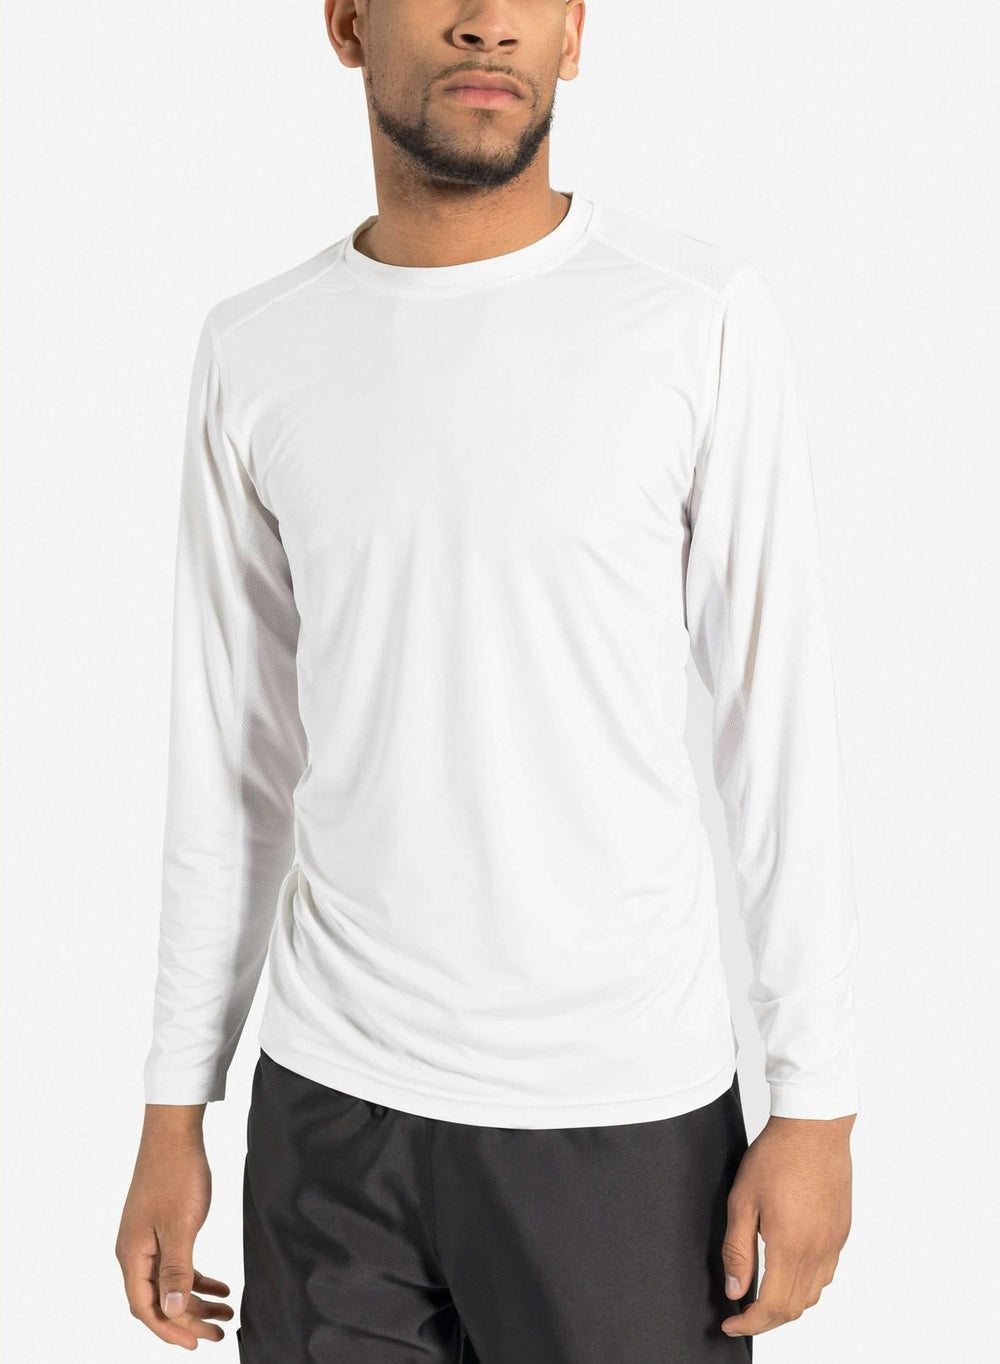 mens long sleeve underscrub white